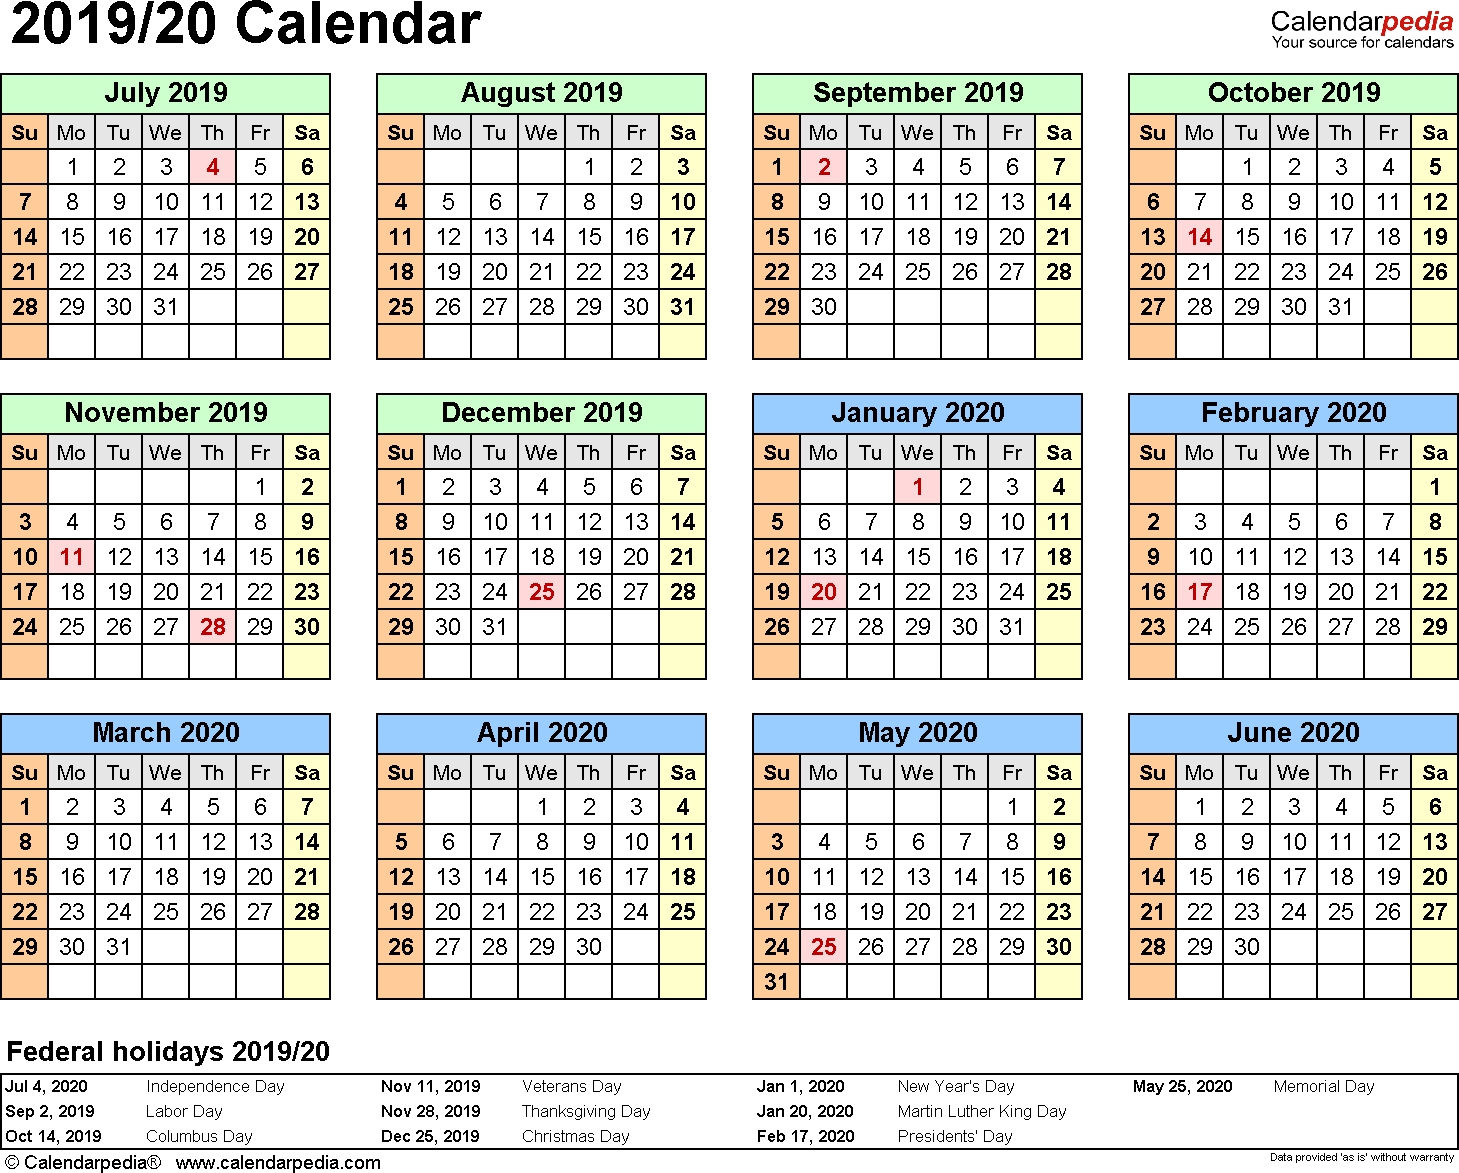 Split Year Calendar 2019/20 (July To June) - Word Templates for Free Printable Calendars 2019-2020 With Holidays